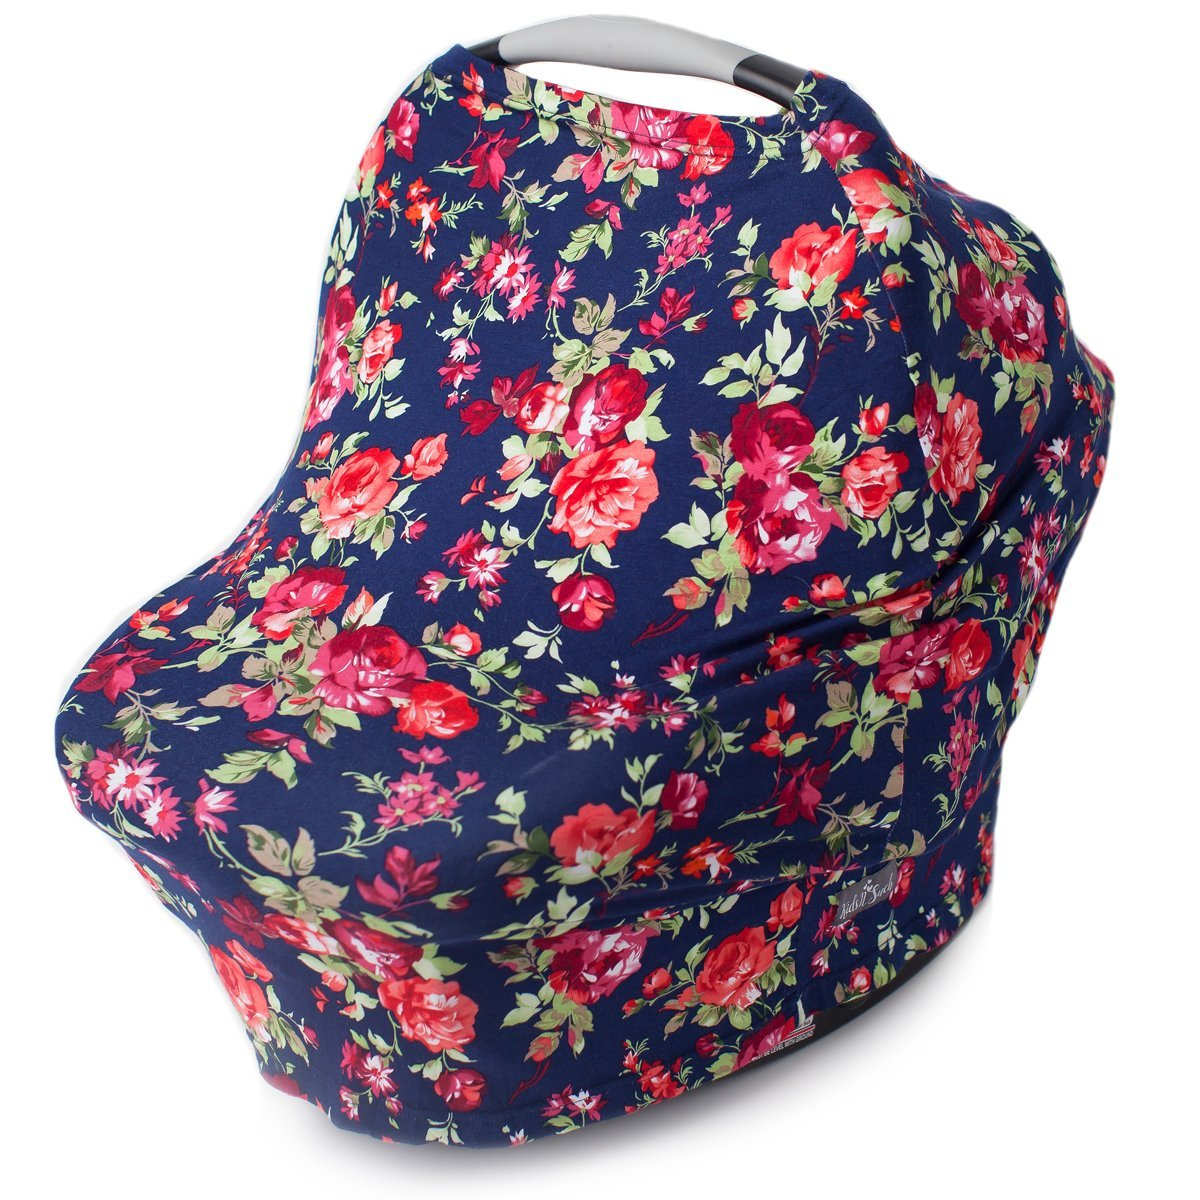 Nursing Cover, Car Seat Canopy, Shopping Cart, High Chair, Stroller and Carseat Covers for Girls- Best Stretchy Infinity Scarf and Shawl- Multi Use Breastfeeding Cover Up- Vintage Navy Floral Print by Kids N' Such (Image #1)